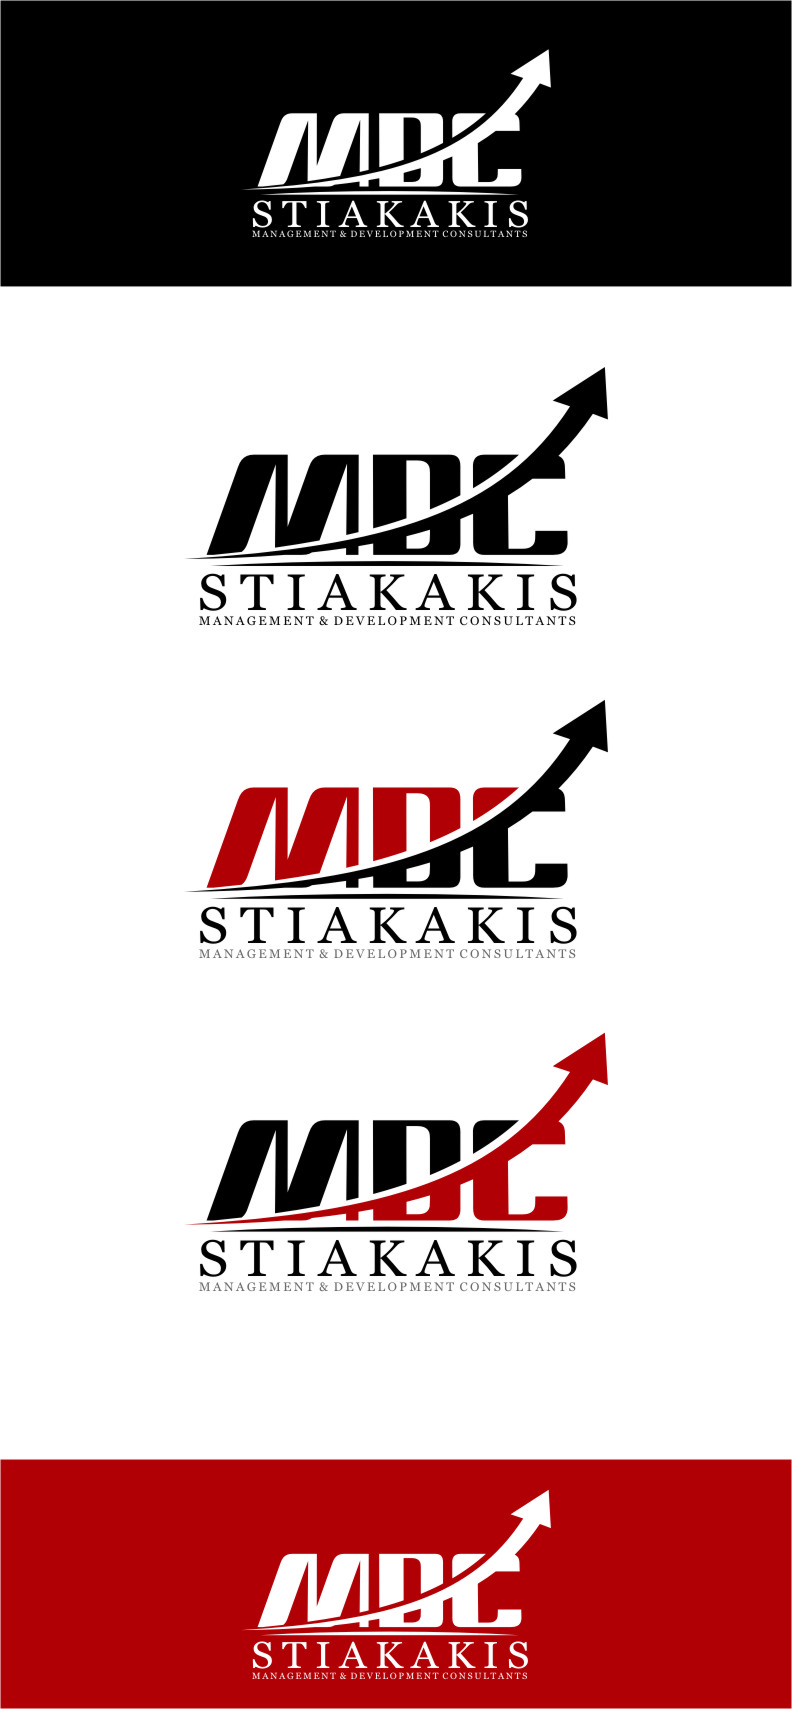 Logo Design by Ngepet_art - Entry No. 114 in the Logo Design Contest Unique Logo Design Wanted for MDC STIAKAKIS.